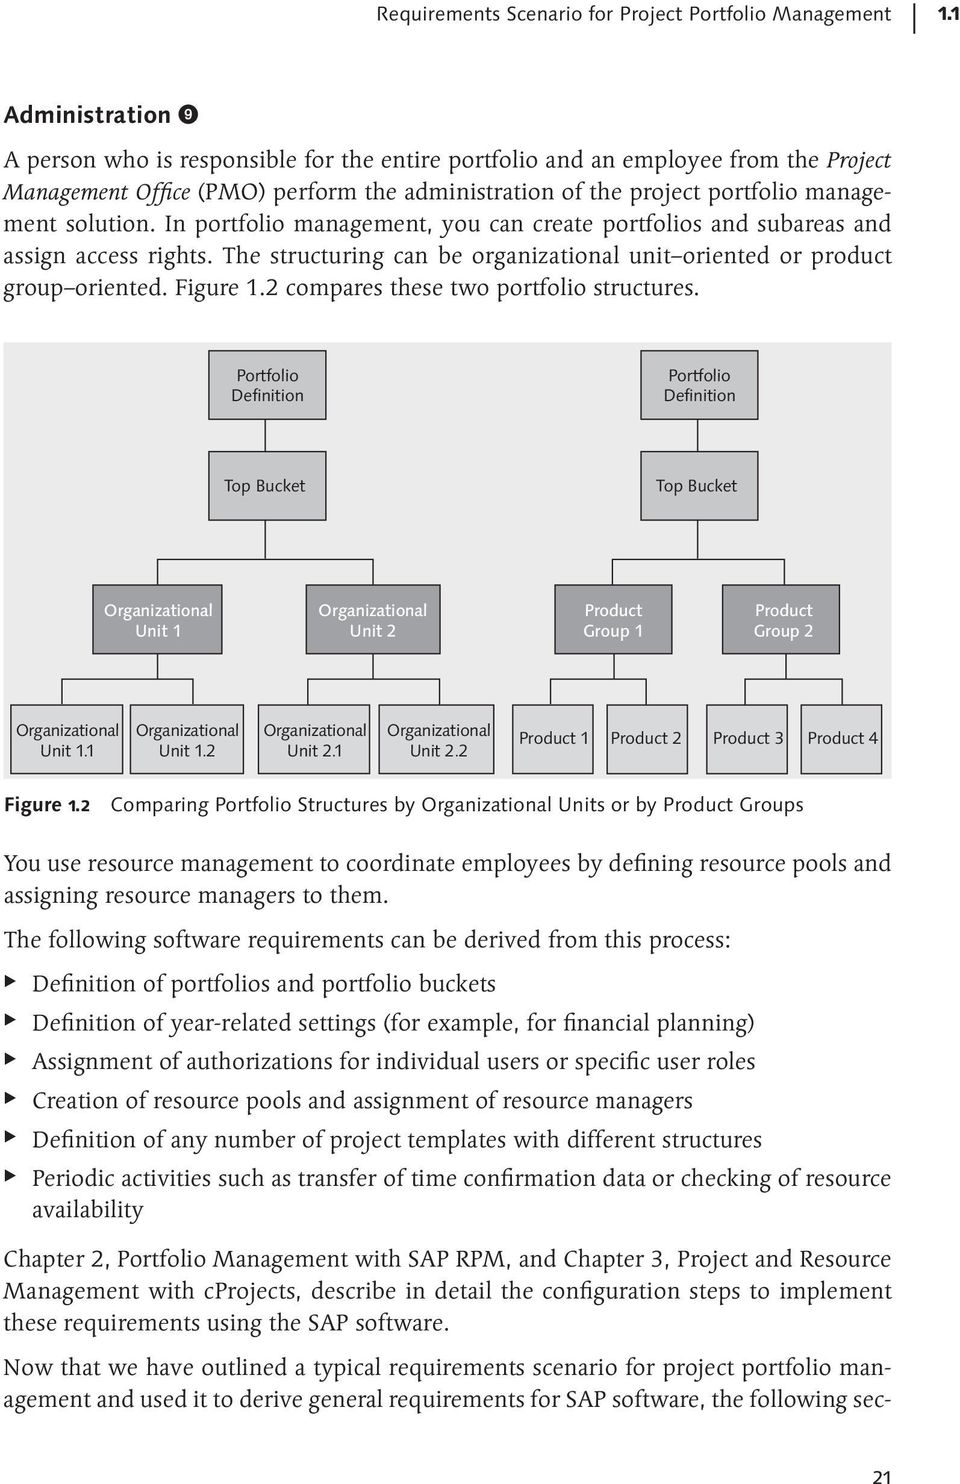 solution. In portfolio management, you can create portfolios and subareas and assign access rights. The structuring can be organizational unit oriented or product group oriented. Figure 1.